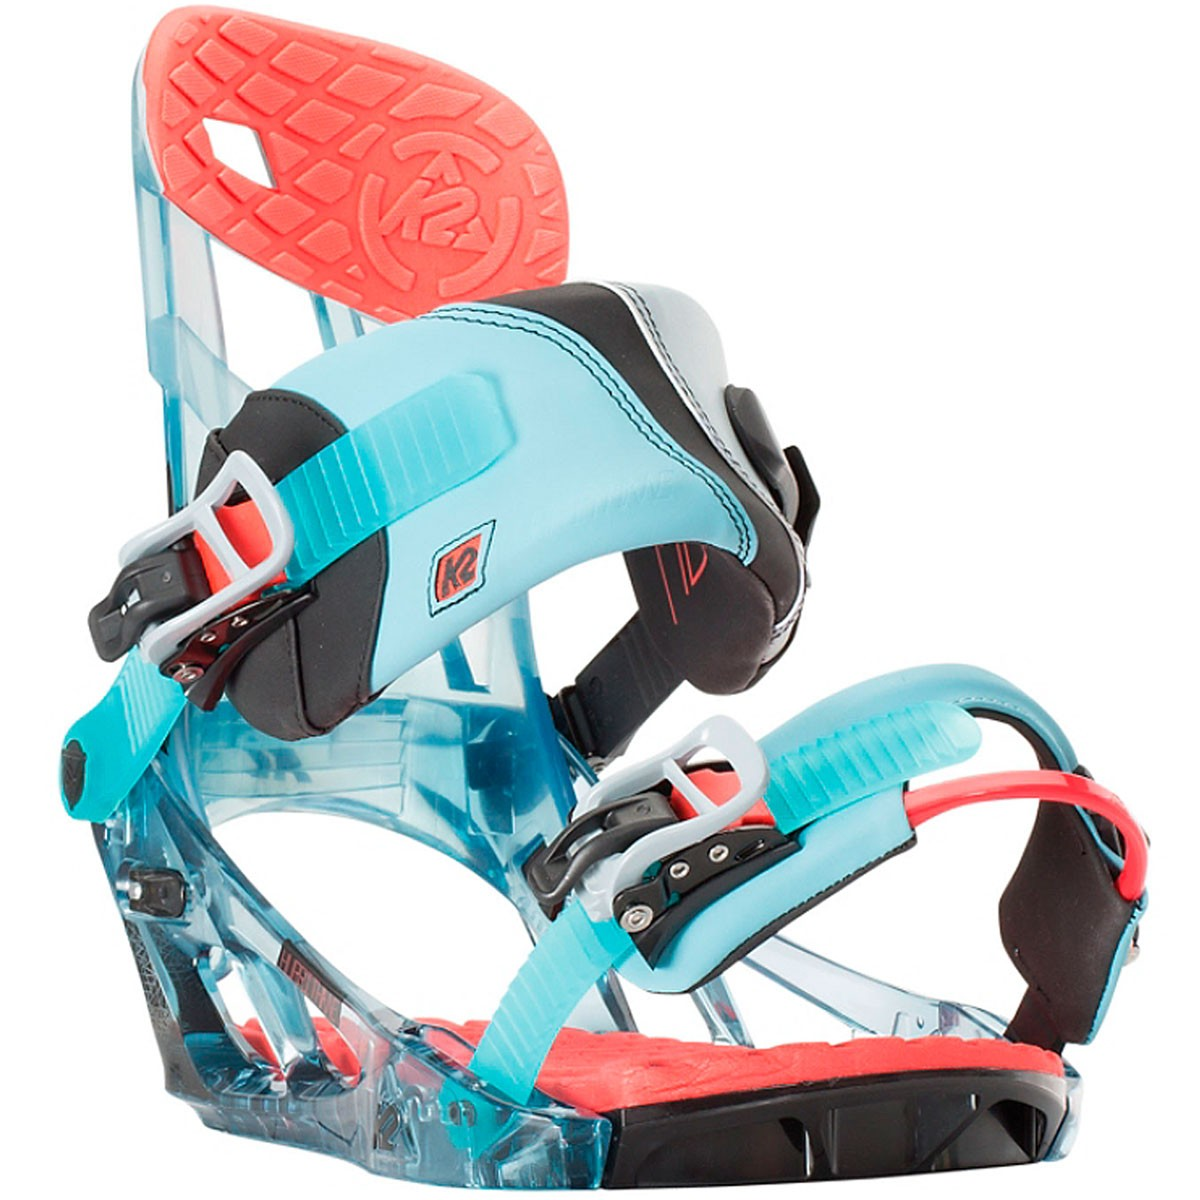 Best Snowboard Bindings: K2 Hurrithane Snowboard Bindings 2016